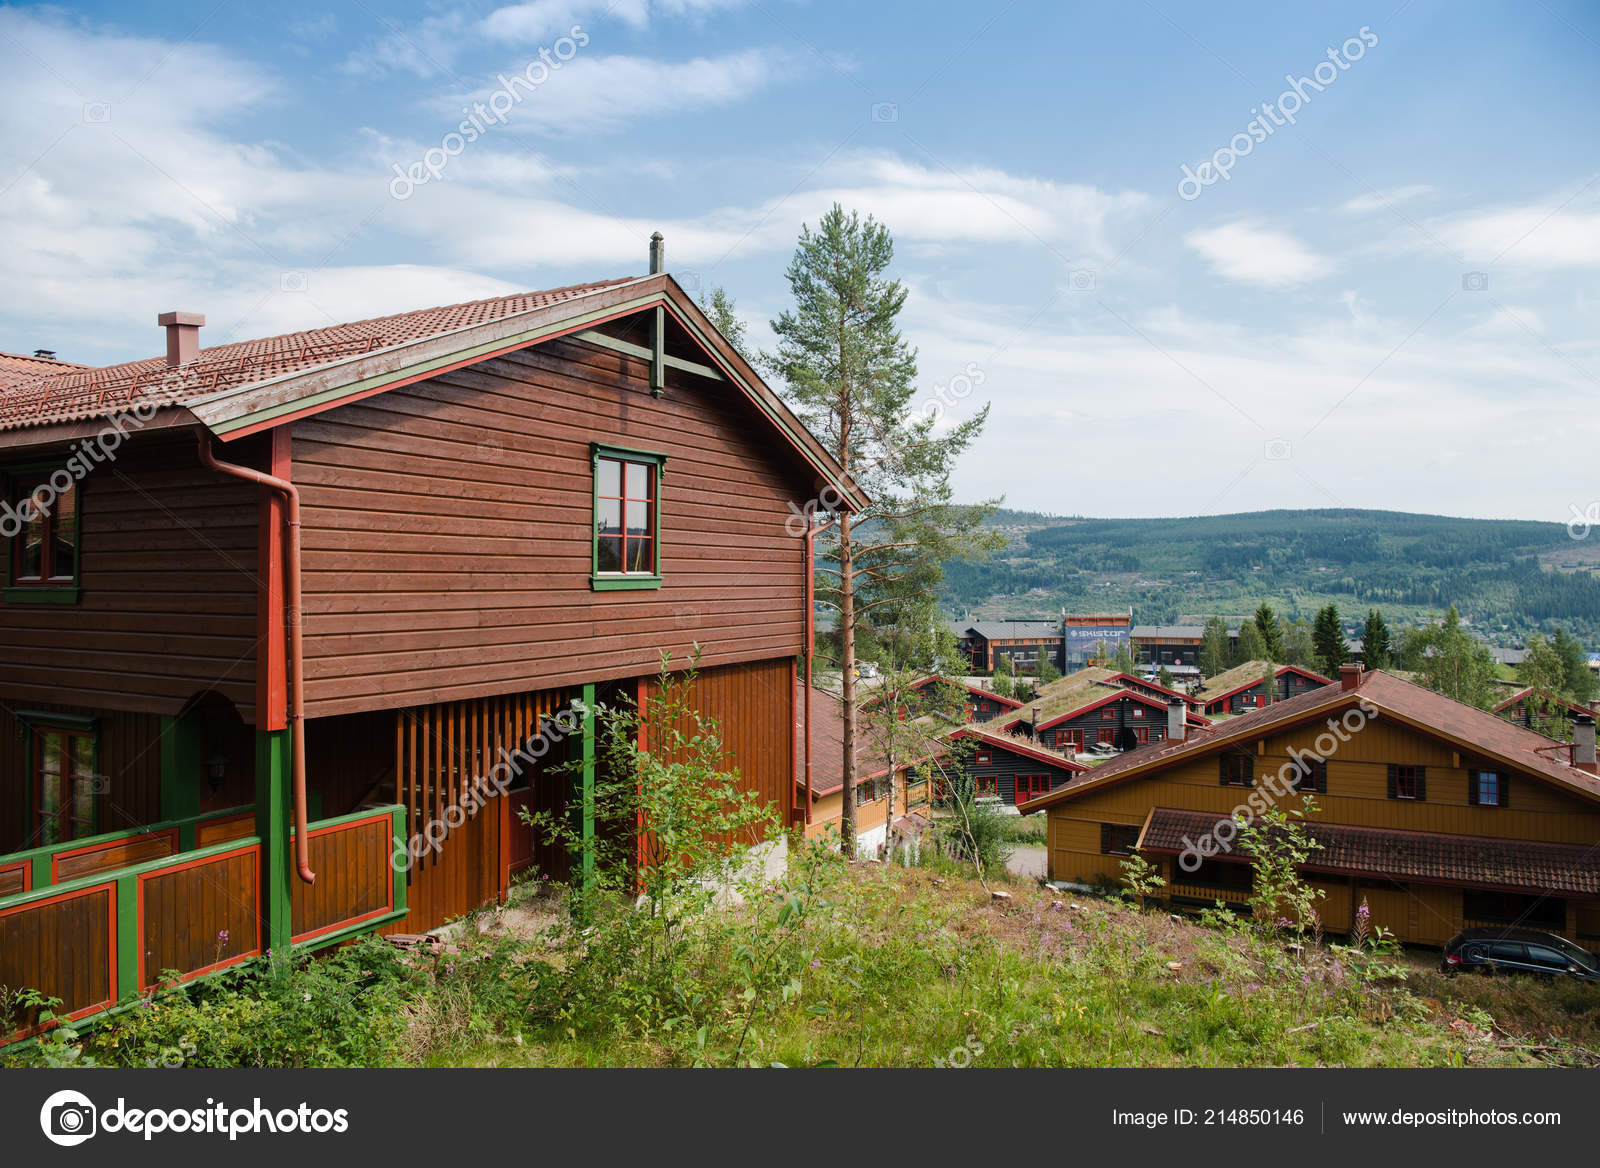 trysil norway july 2018 living houses largest ski resort trysil